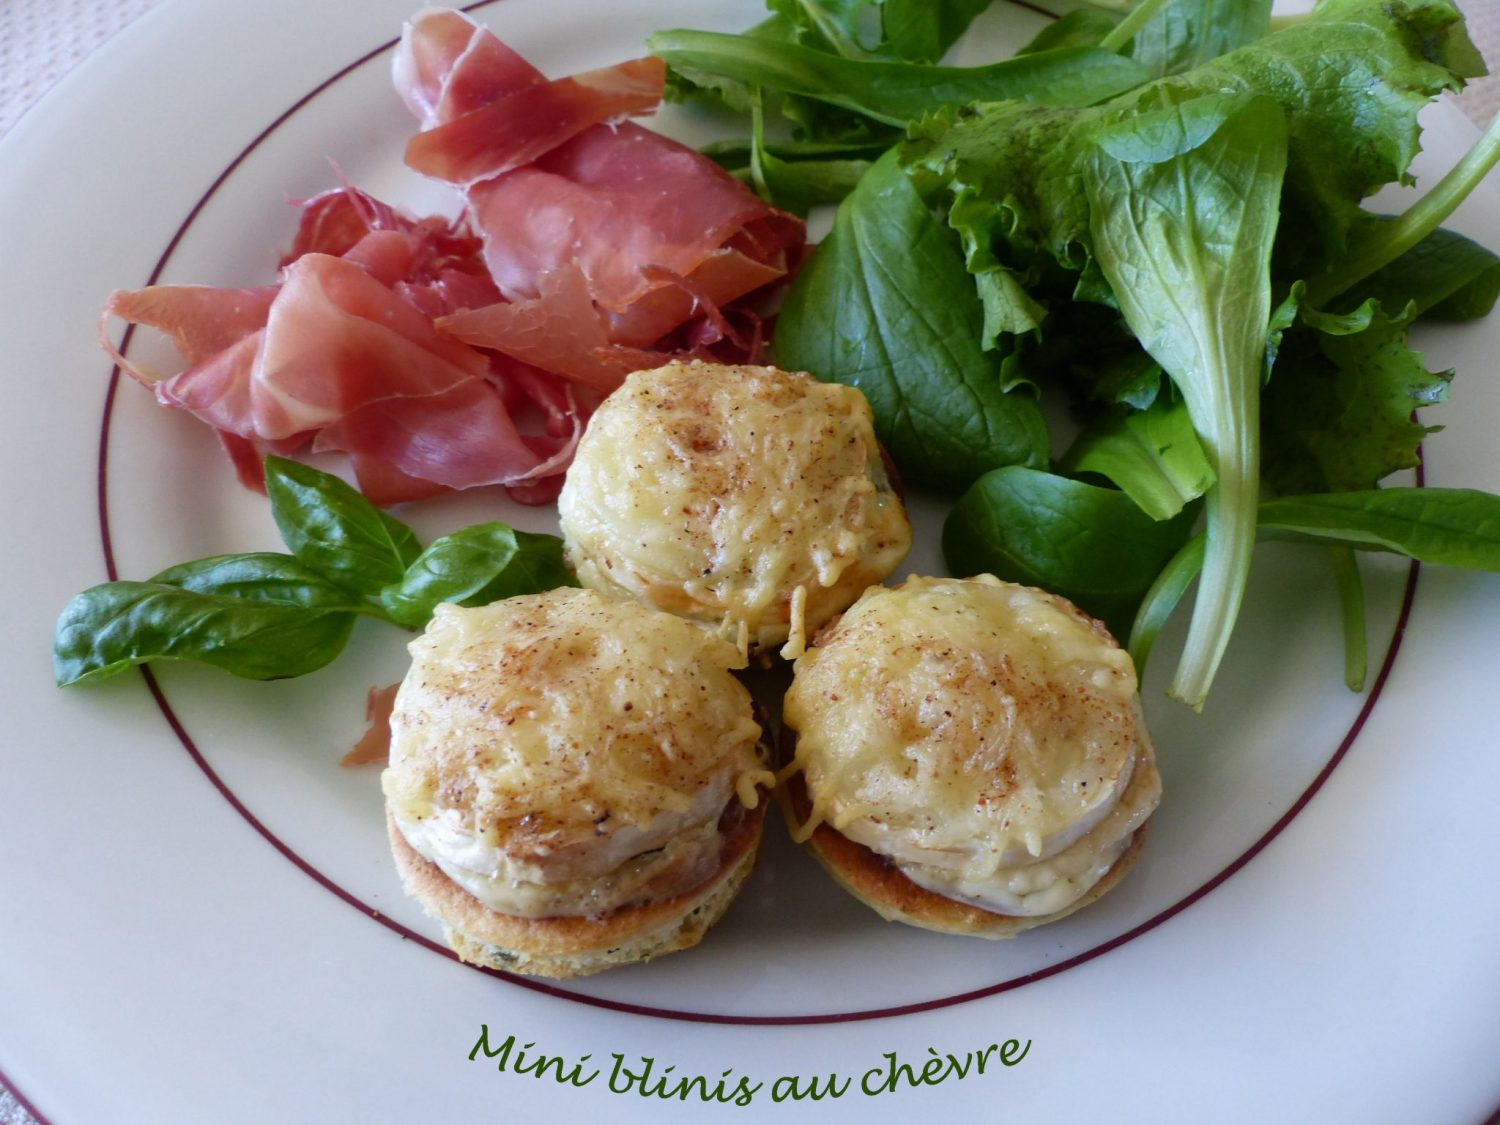 Mini blinis au chèvre P1130800 R